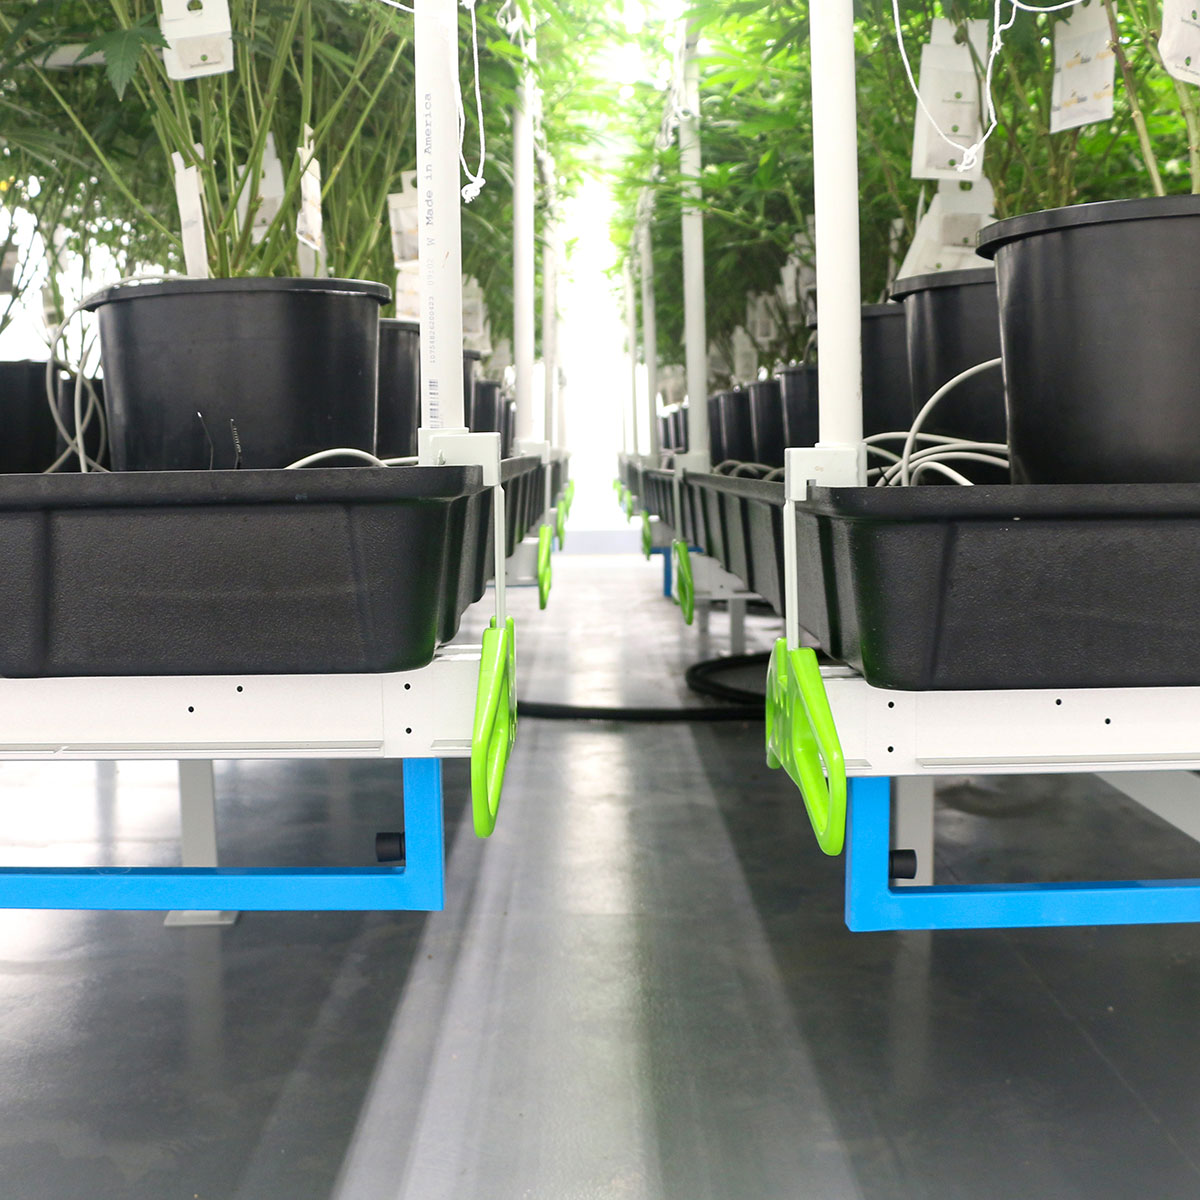 cannabis grow equipment, cannabis commercial lighting fixtures, growing marijuana, cannabis grow operational supplies